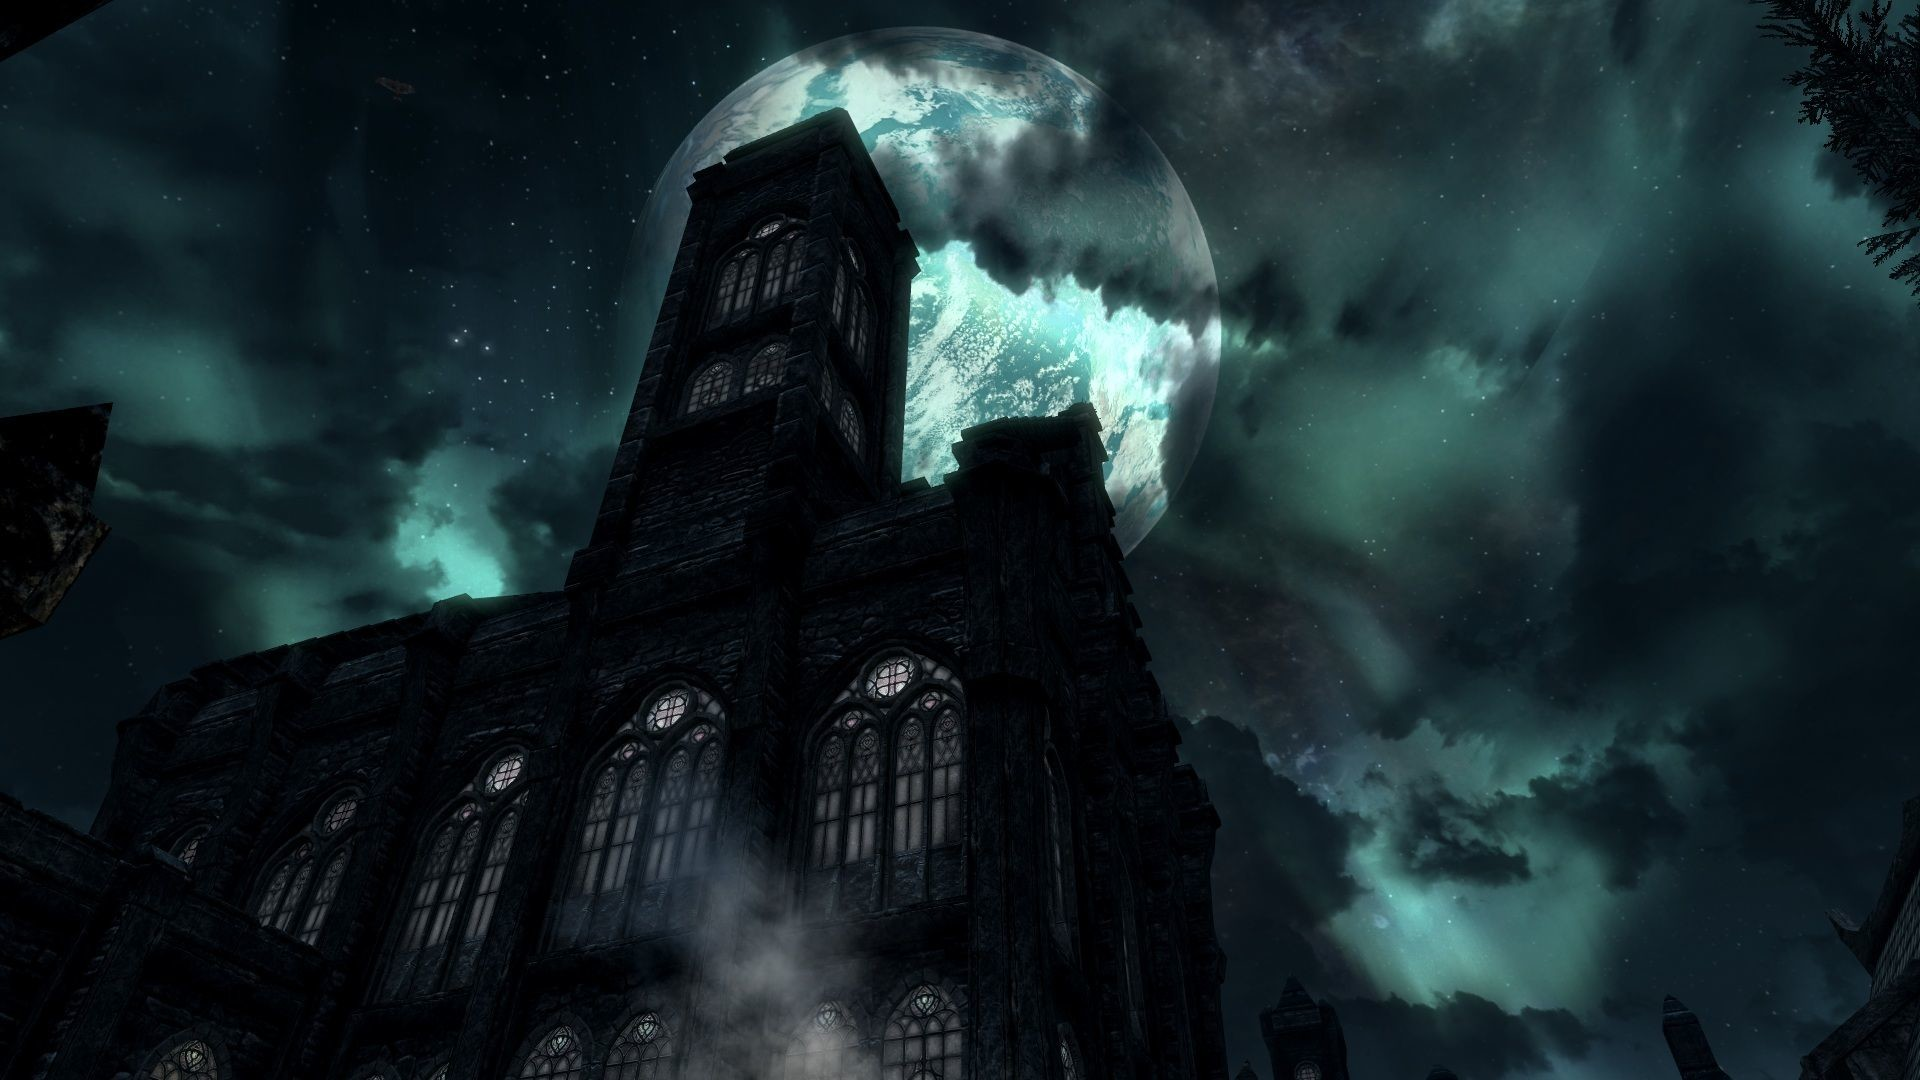 Res: 1920x1080, Vampire Castle Wallpaper Desktop Background #bli4  px 386.04 KB  Horror dark castle wallpaper dark